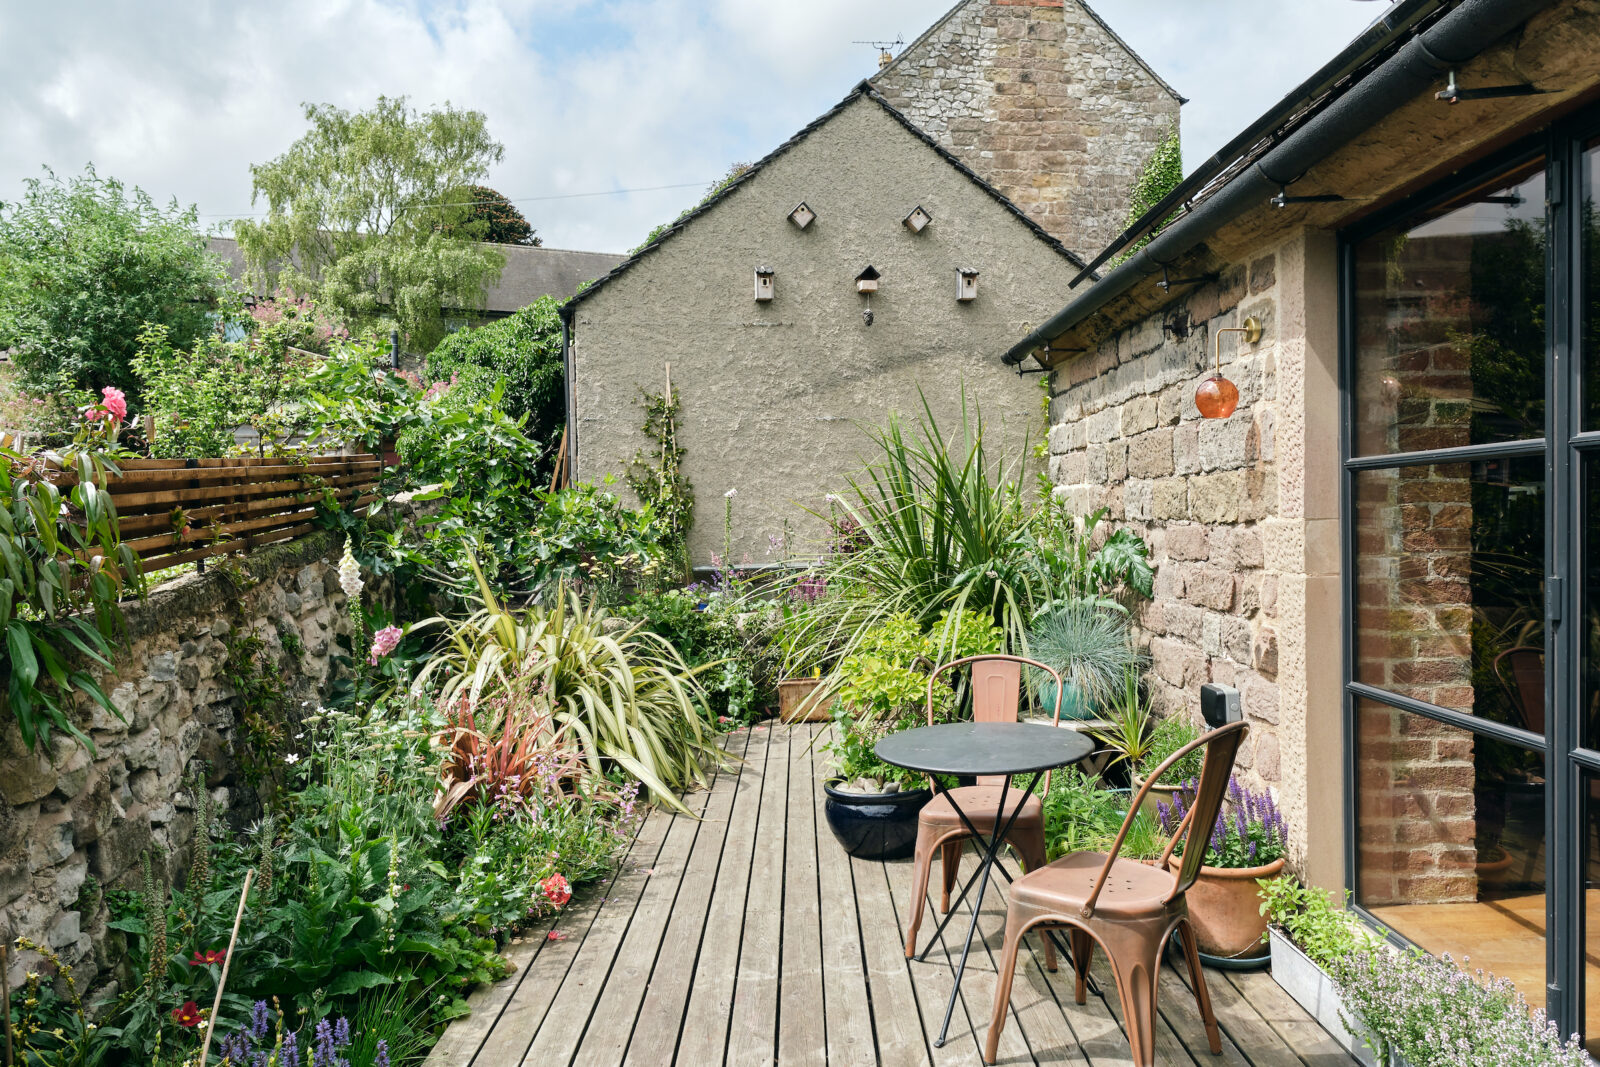 North End - a Victorian-era live/work space with three bedrooms, a workshop and cinema